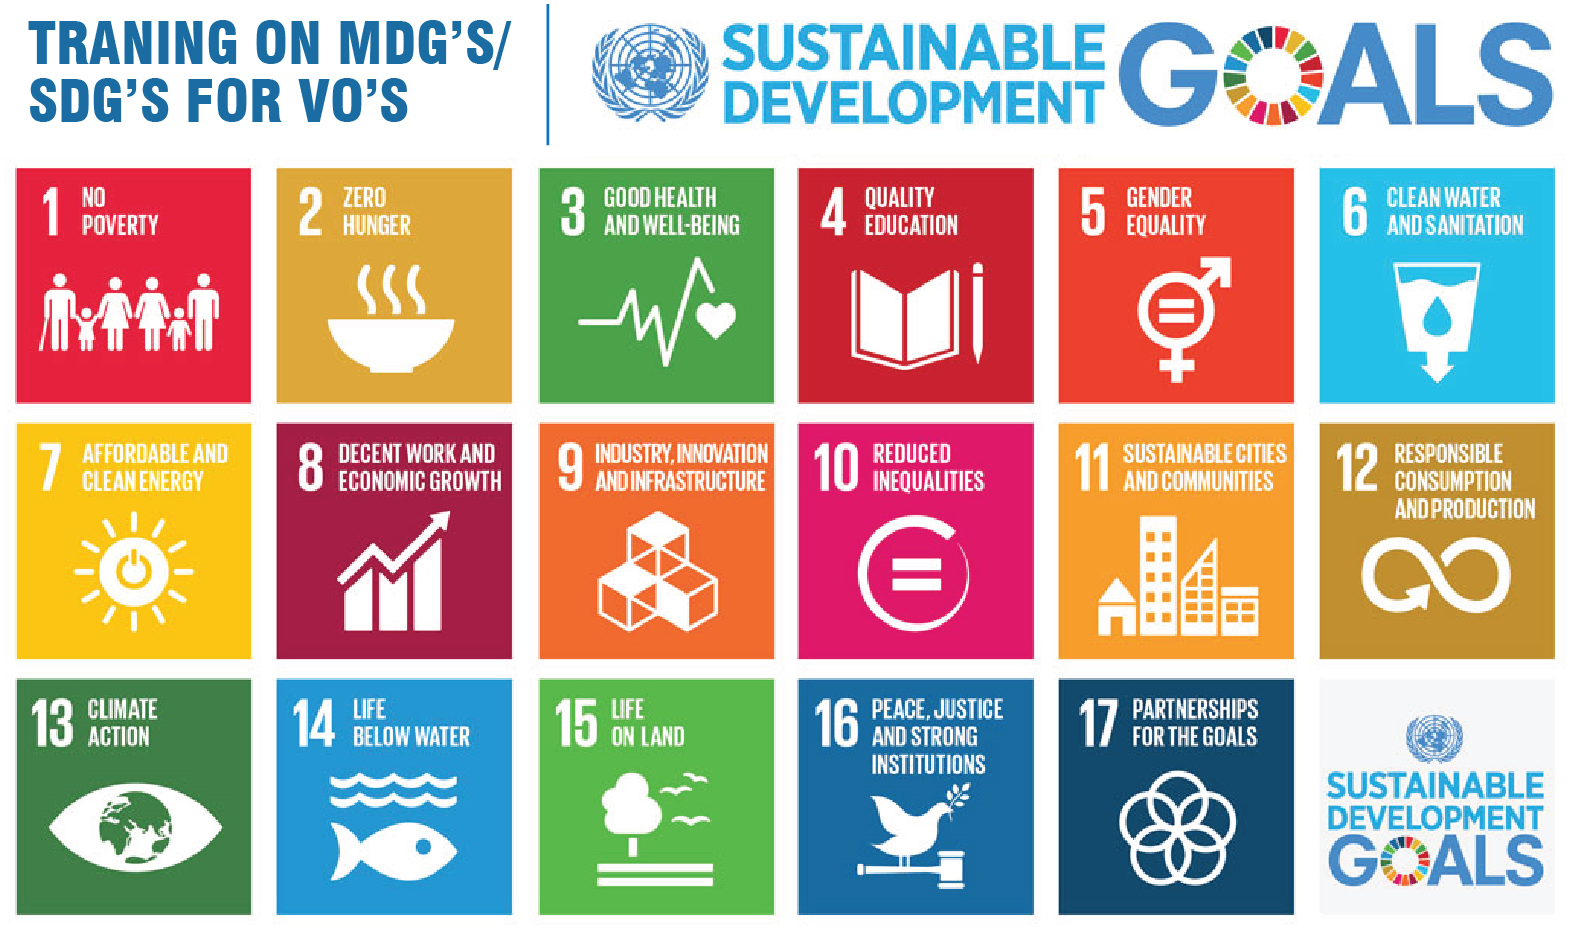 Announcement of Training on MDGs/SDGs for VOs.